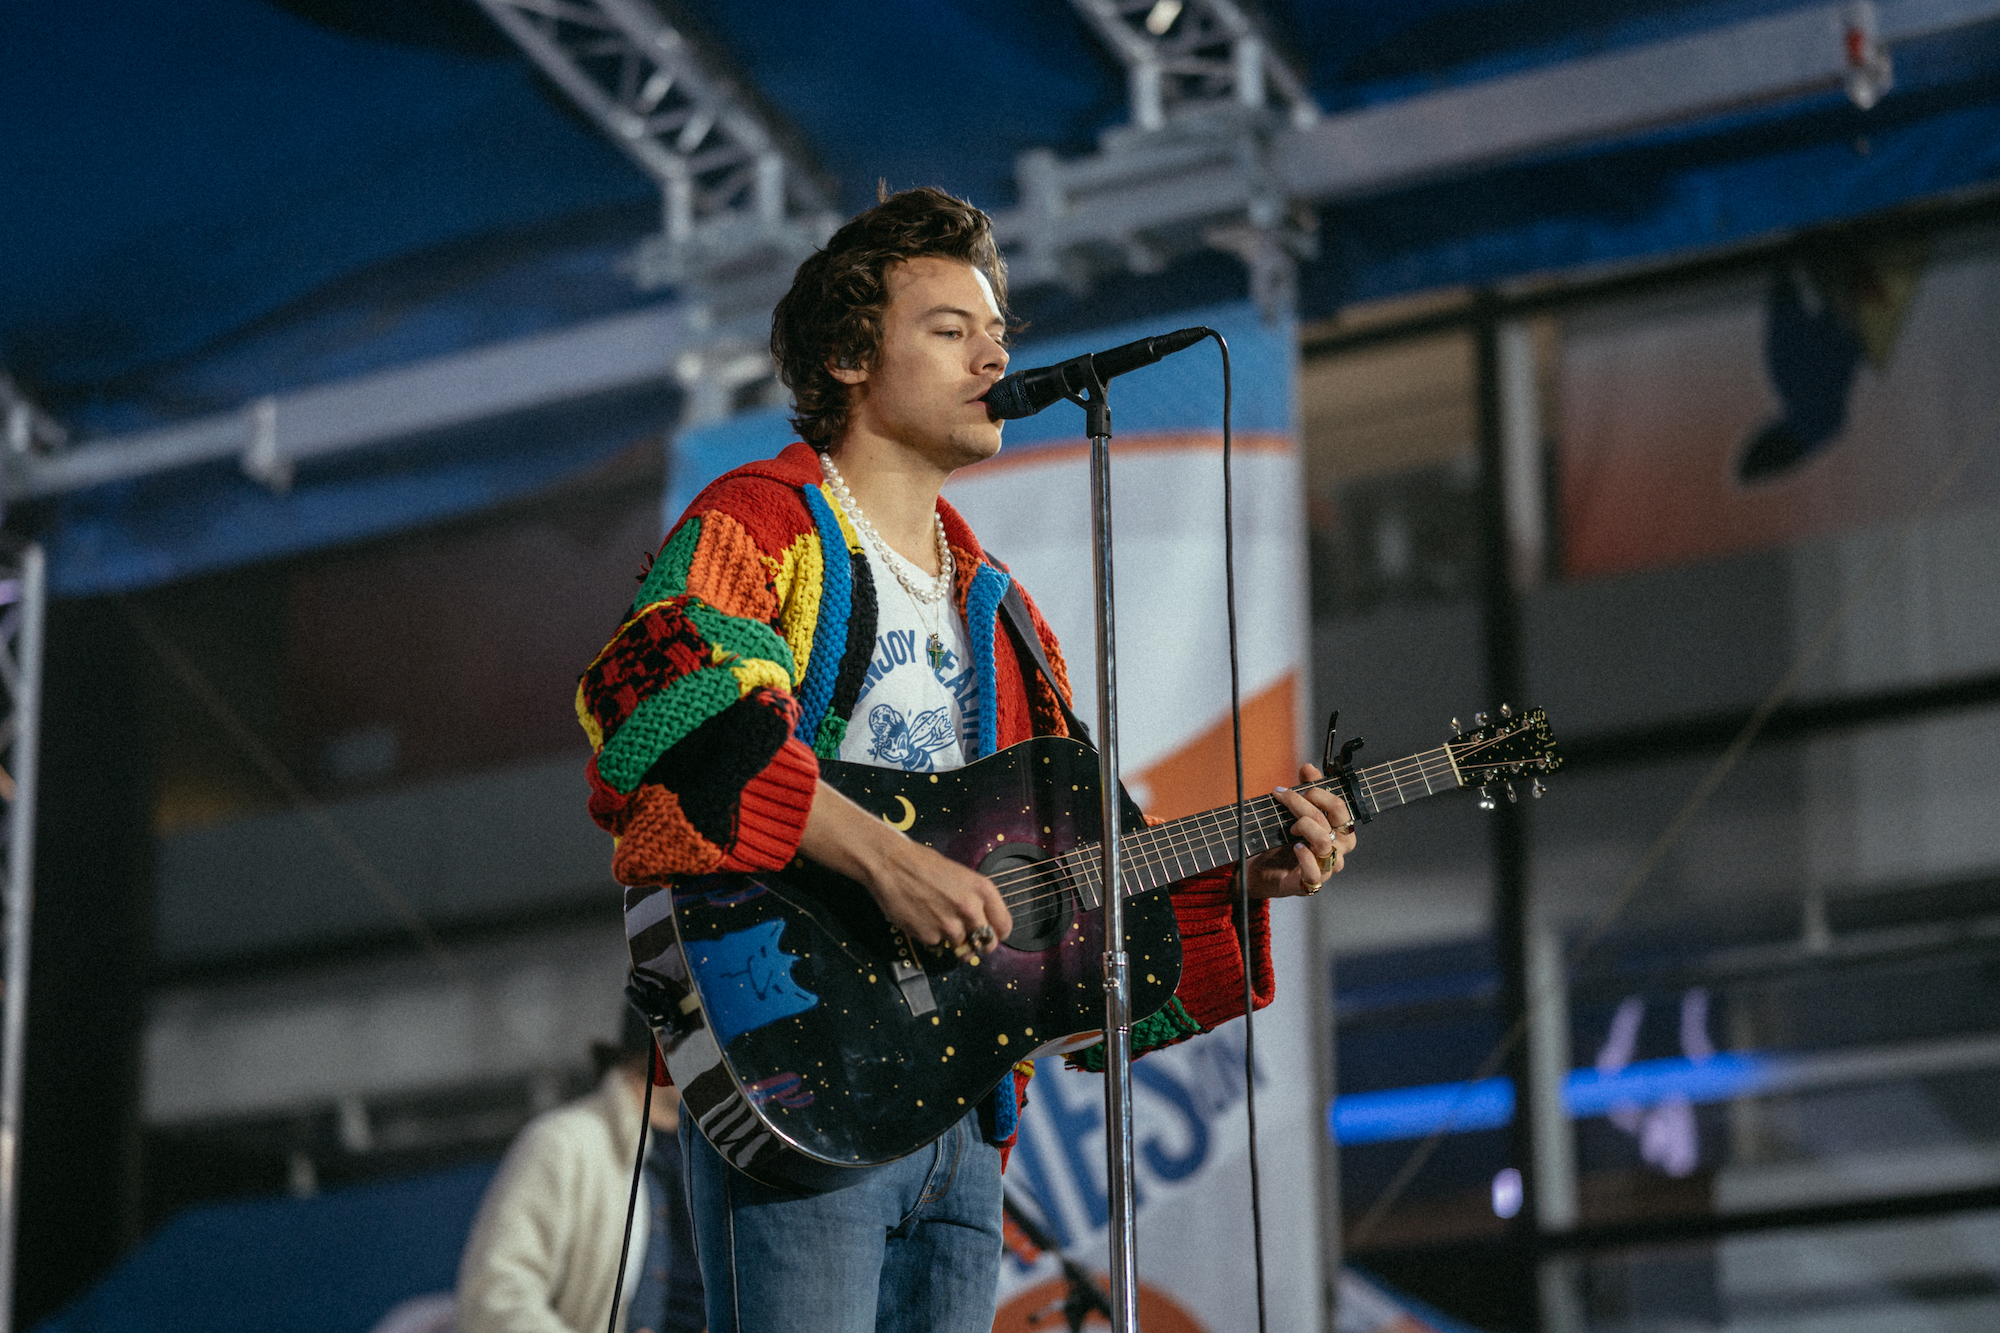 Harry Styles rehearsing for the Today Show on February 26, 2020